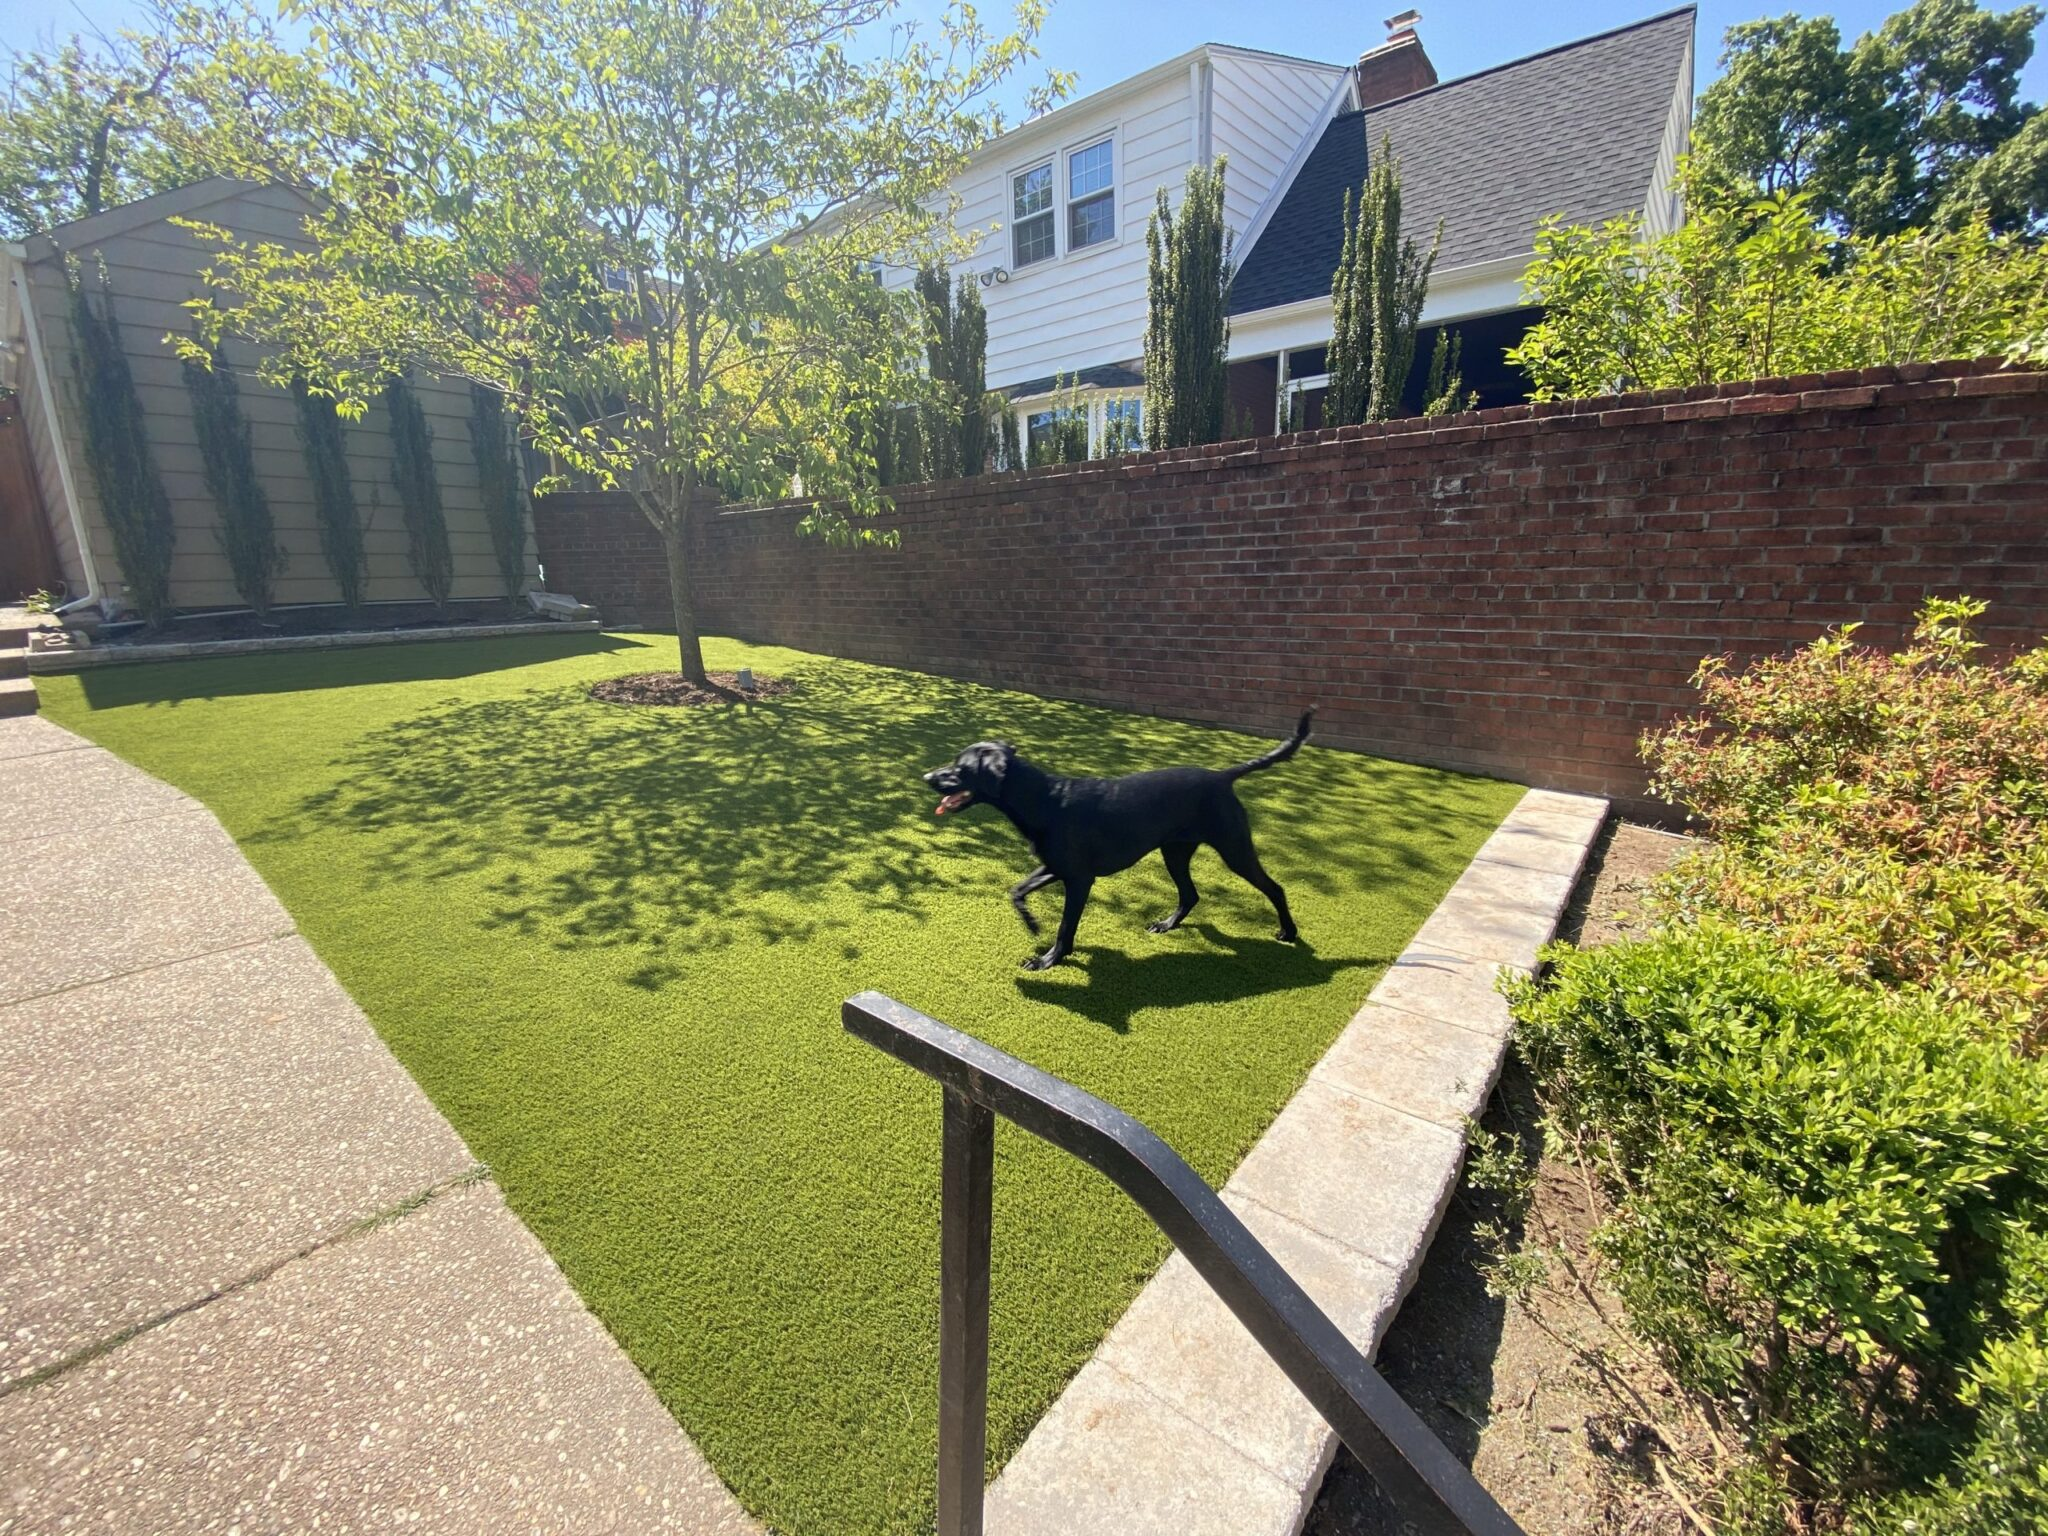 residential home turf for pet